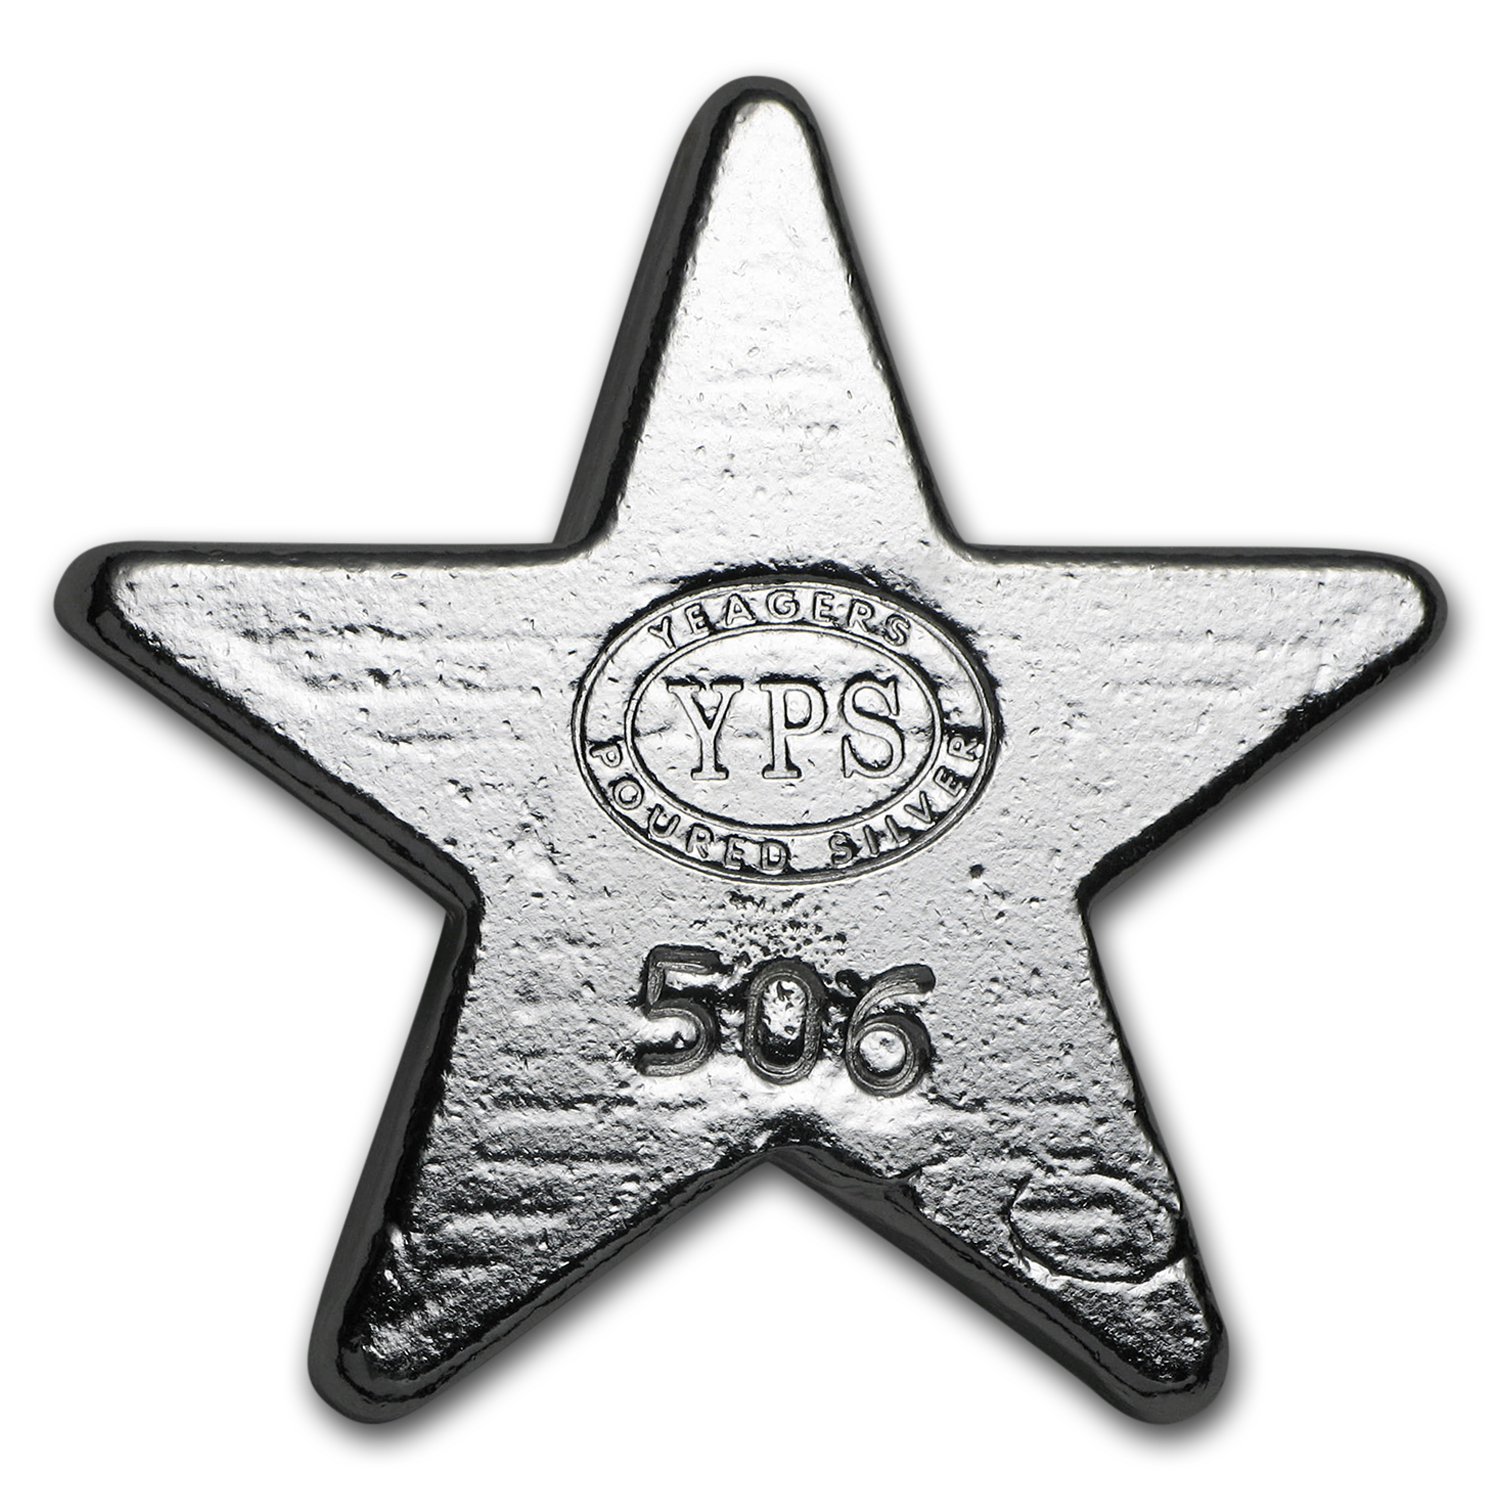 2 oz Silver - Yeager Poured Silver (Star)